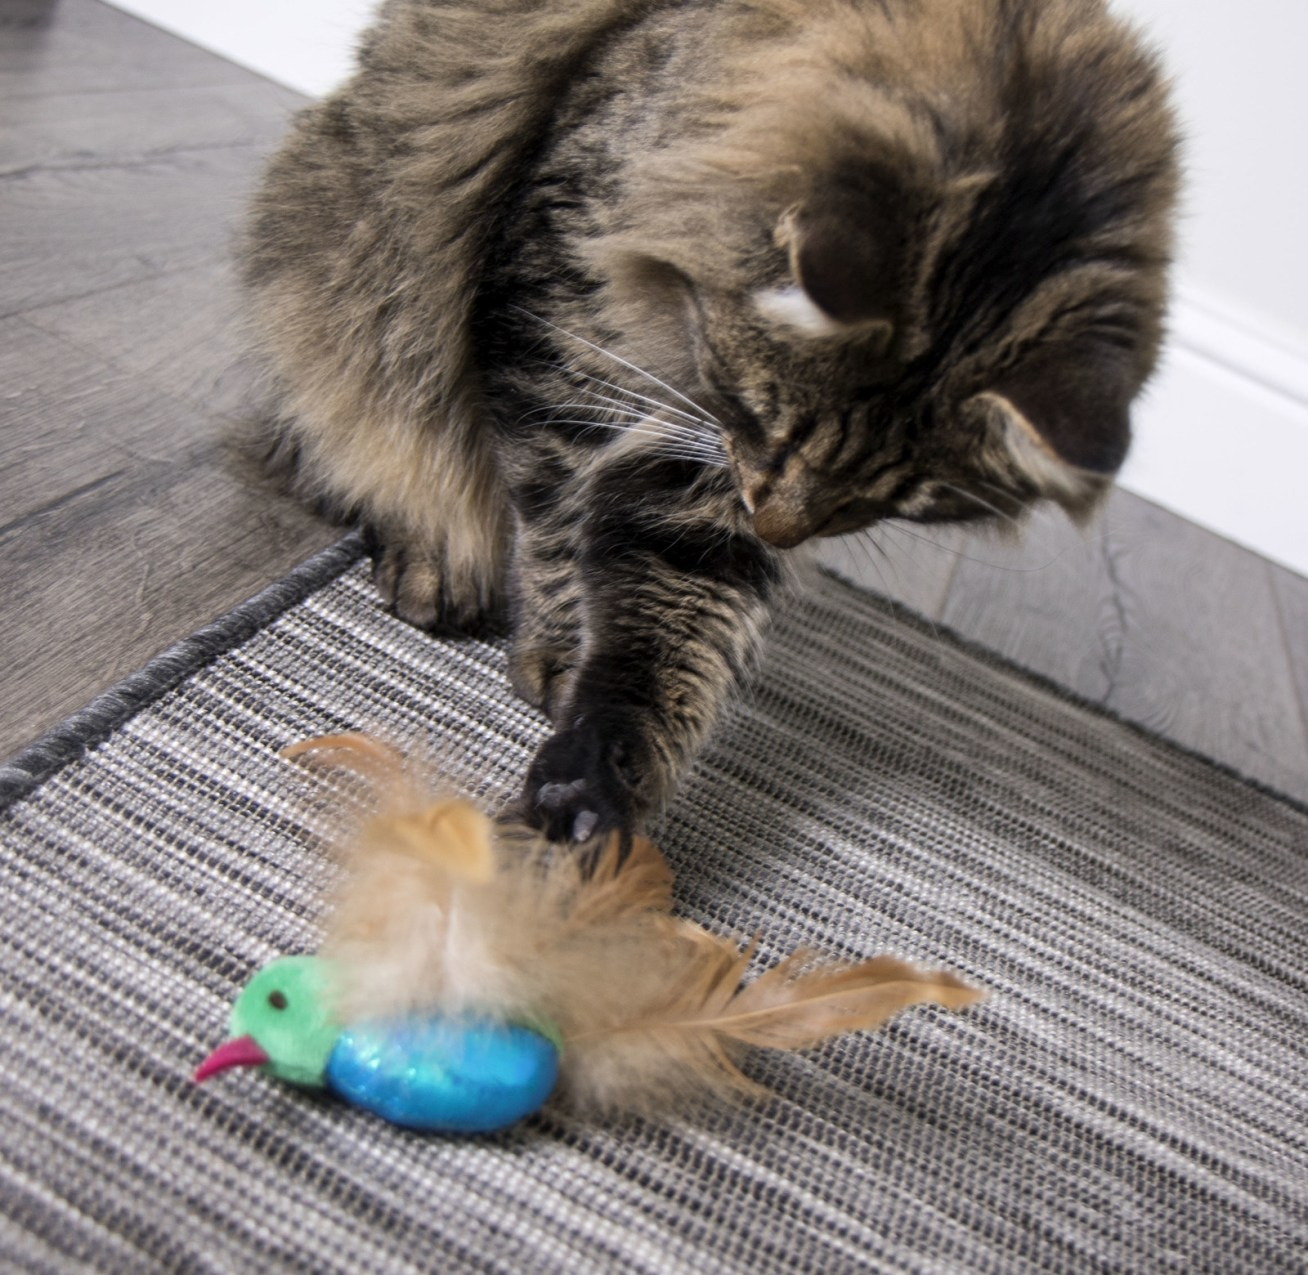 """Promising review: """"My cat doesn't like toys with feathers. However this little singing hummingbird is a totally different story. She is 16 years old and loves it. It's always carried to her bed for nap time. It's a winner for her."""" —MeowMeowsMommyPrice: .99"""